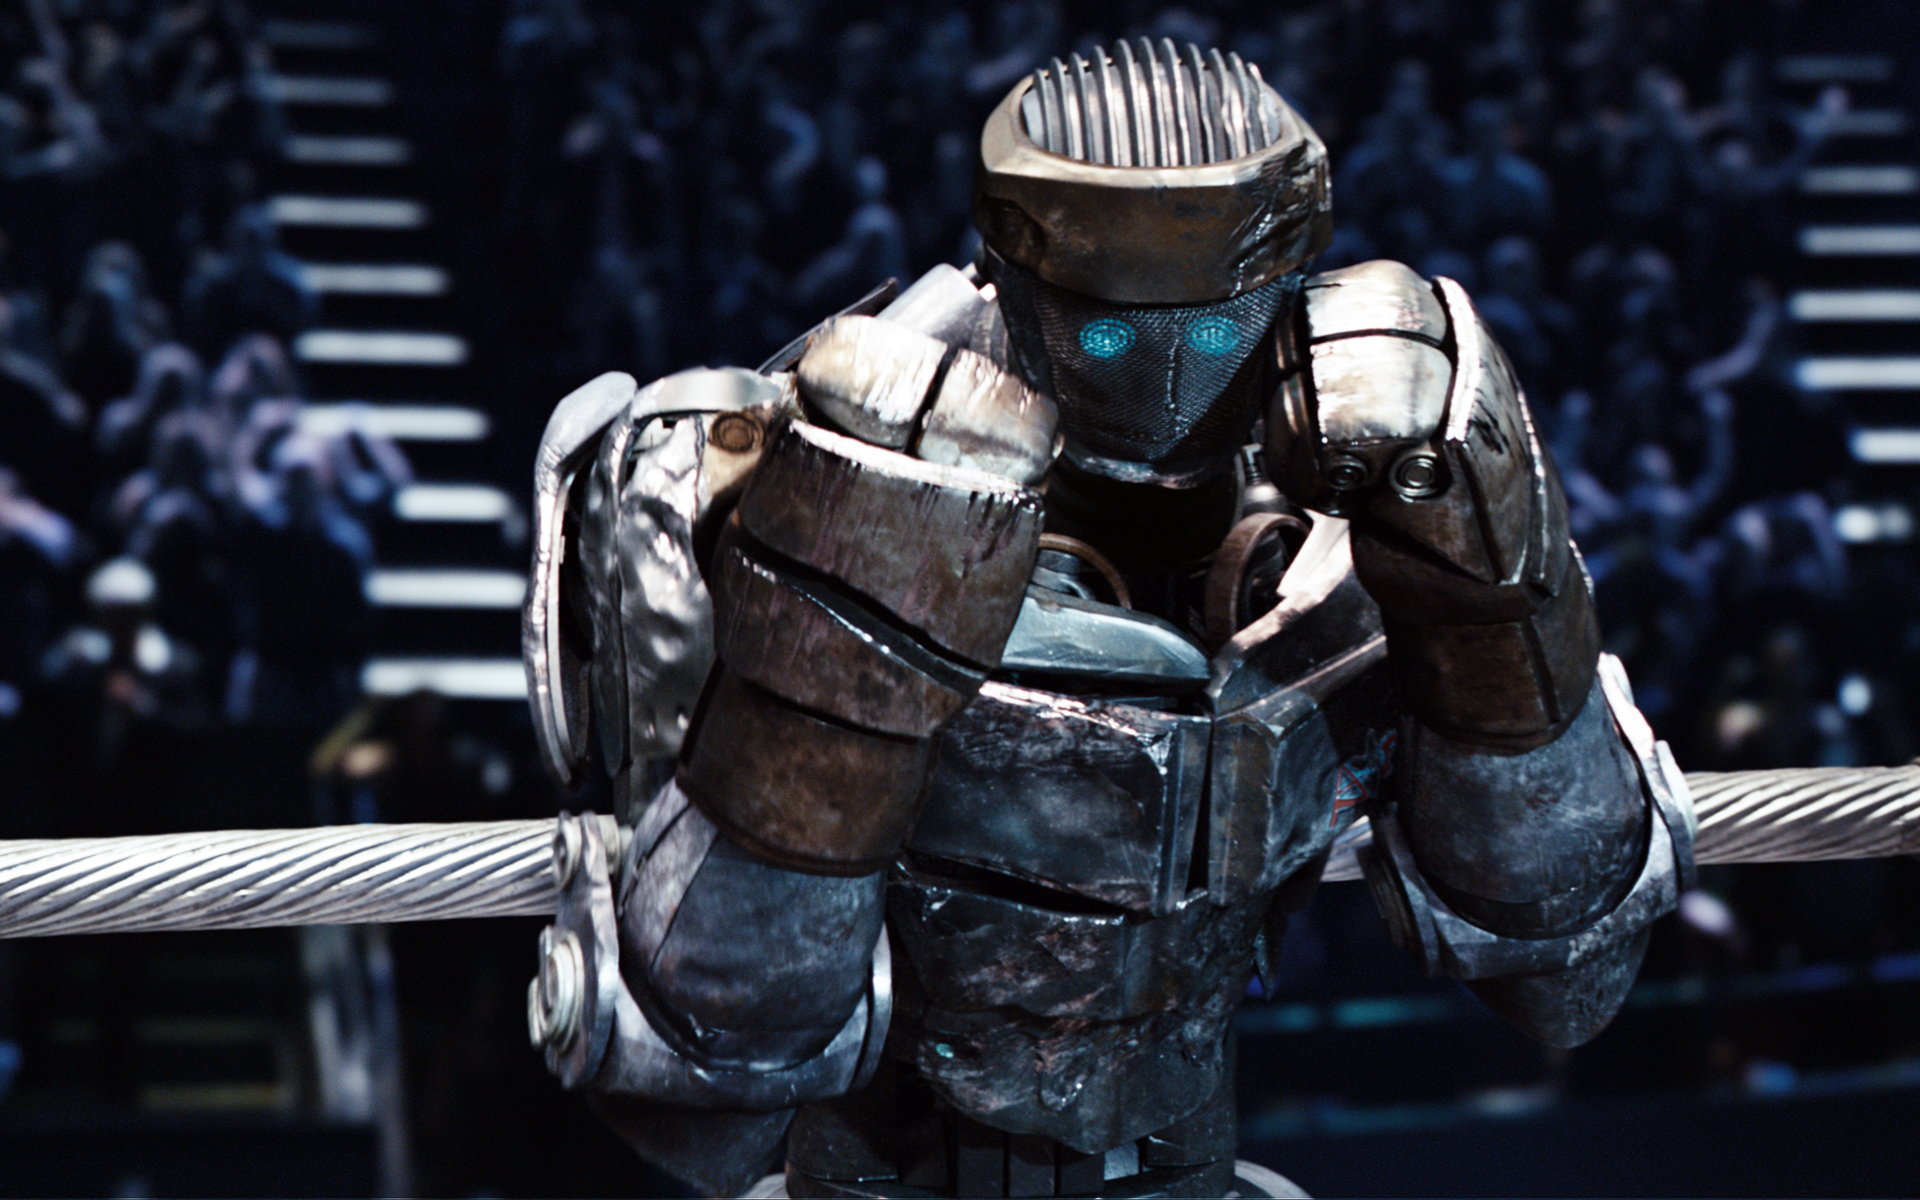 Image currently unavailable. Go to www.generator.ringhack.com and choose Real Steel World Robot Boxing image, you will be redirect to Real Steel World Robot Boxing Generator site.